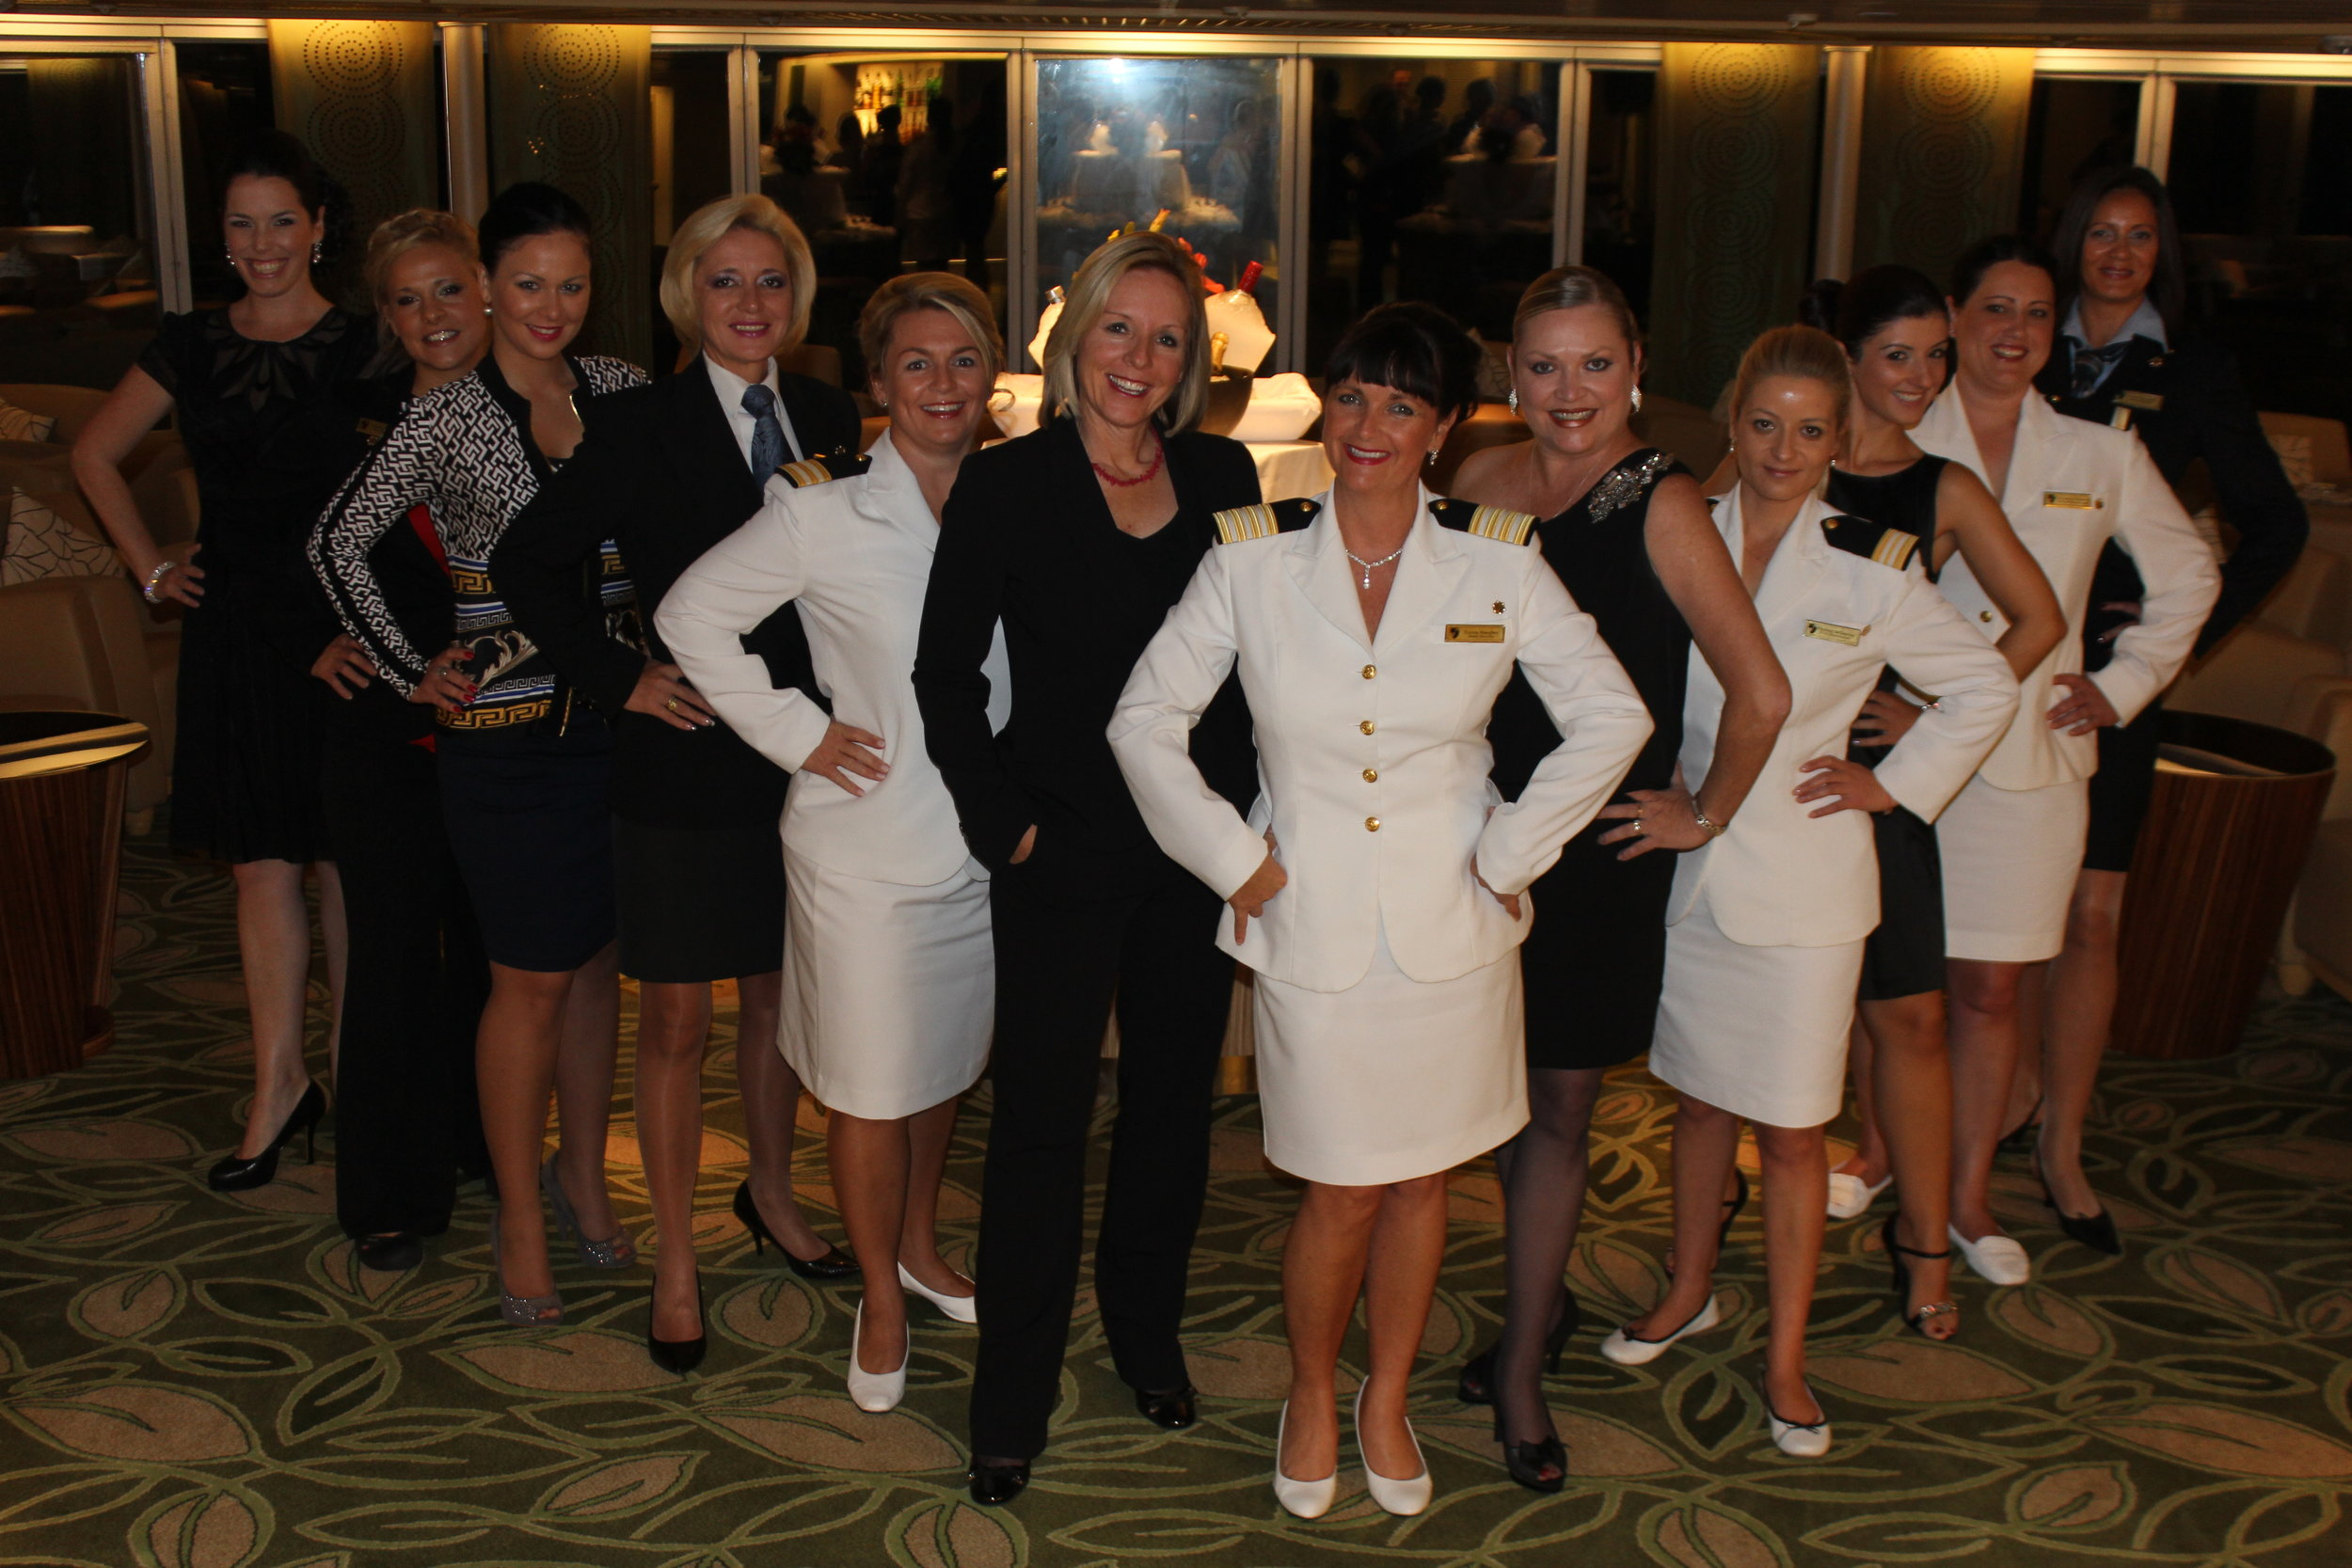 Teresa Haughey: leading the way for female leaders within Seabourn Cruise Lines